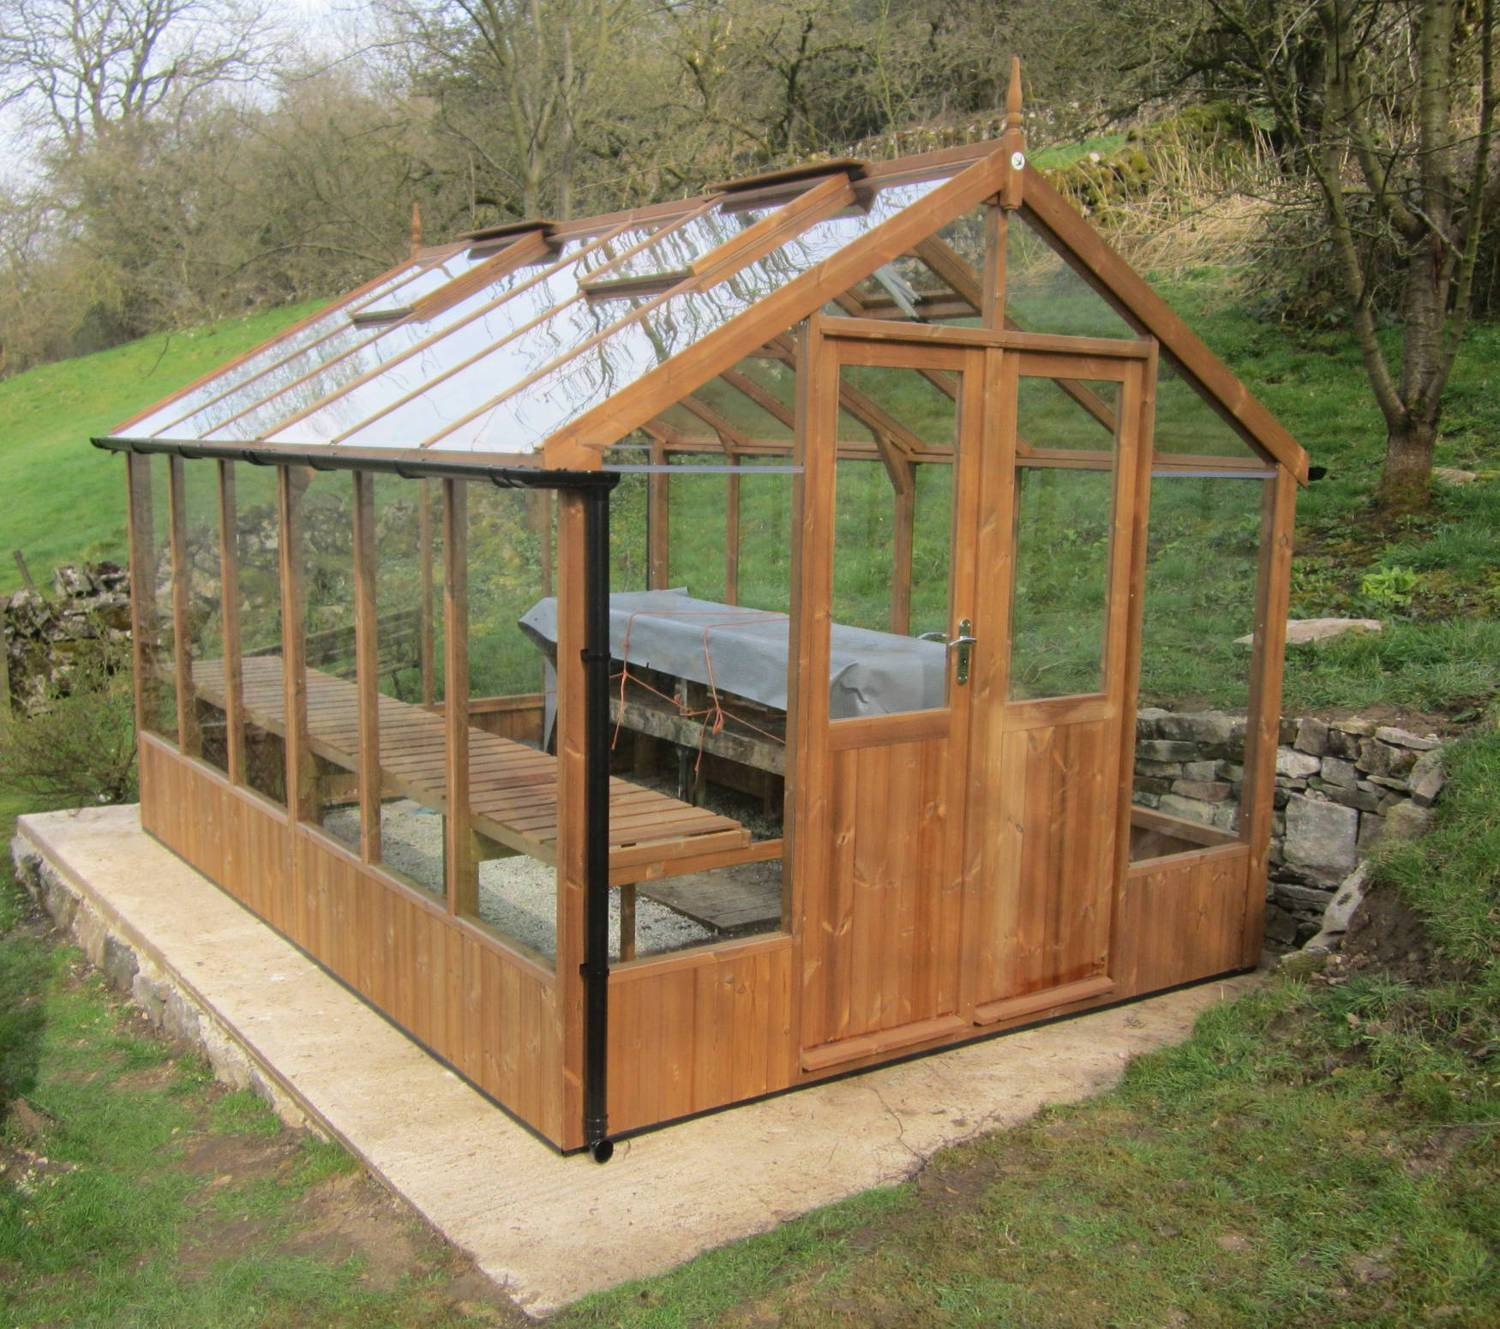 Swallow Raven 8x8 Wooden Greenhouse